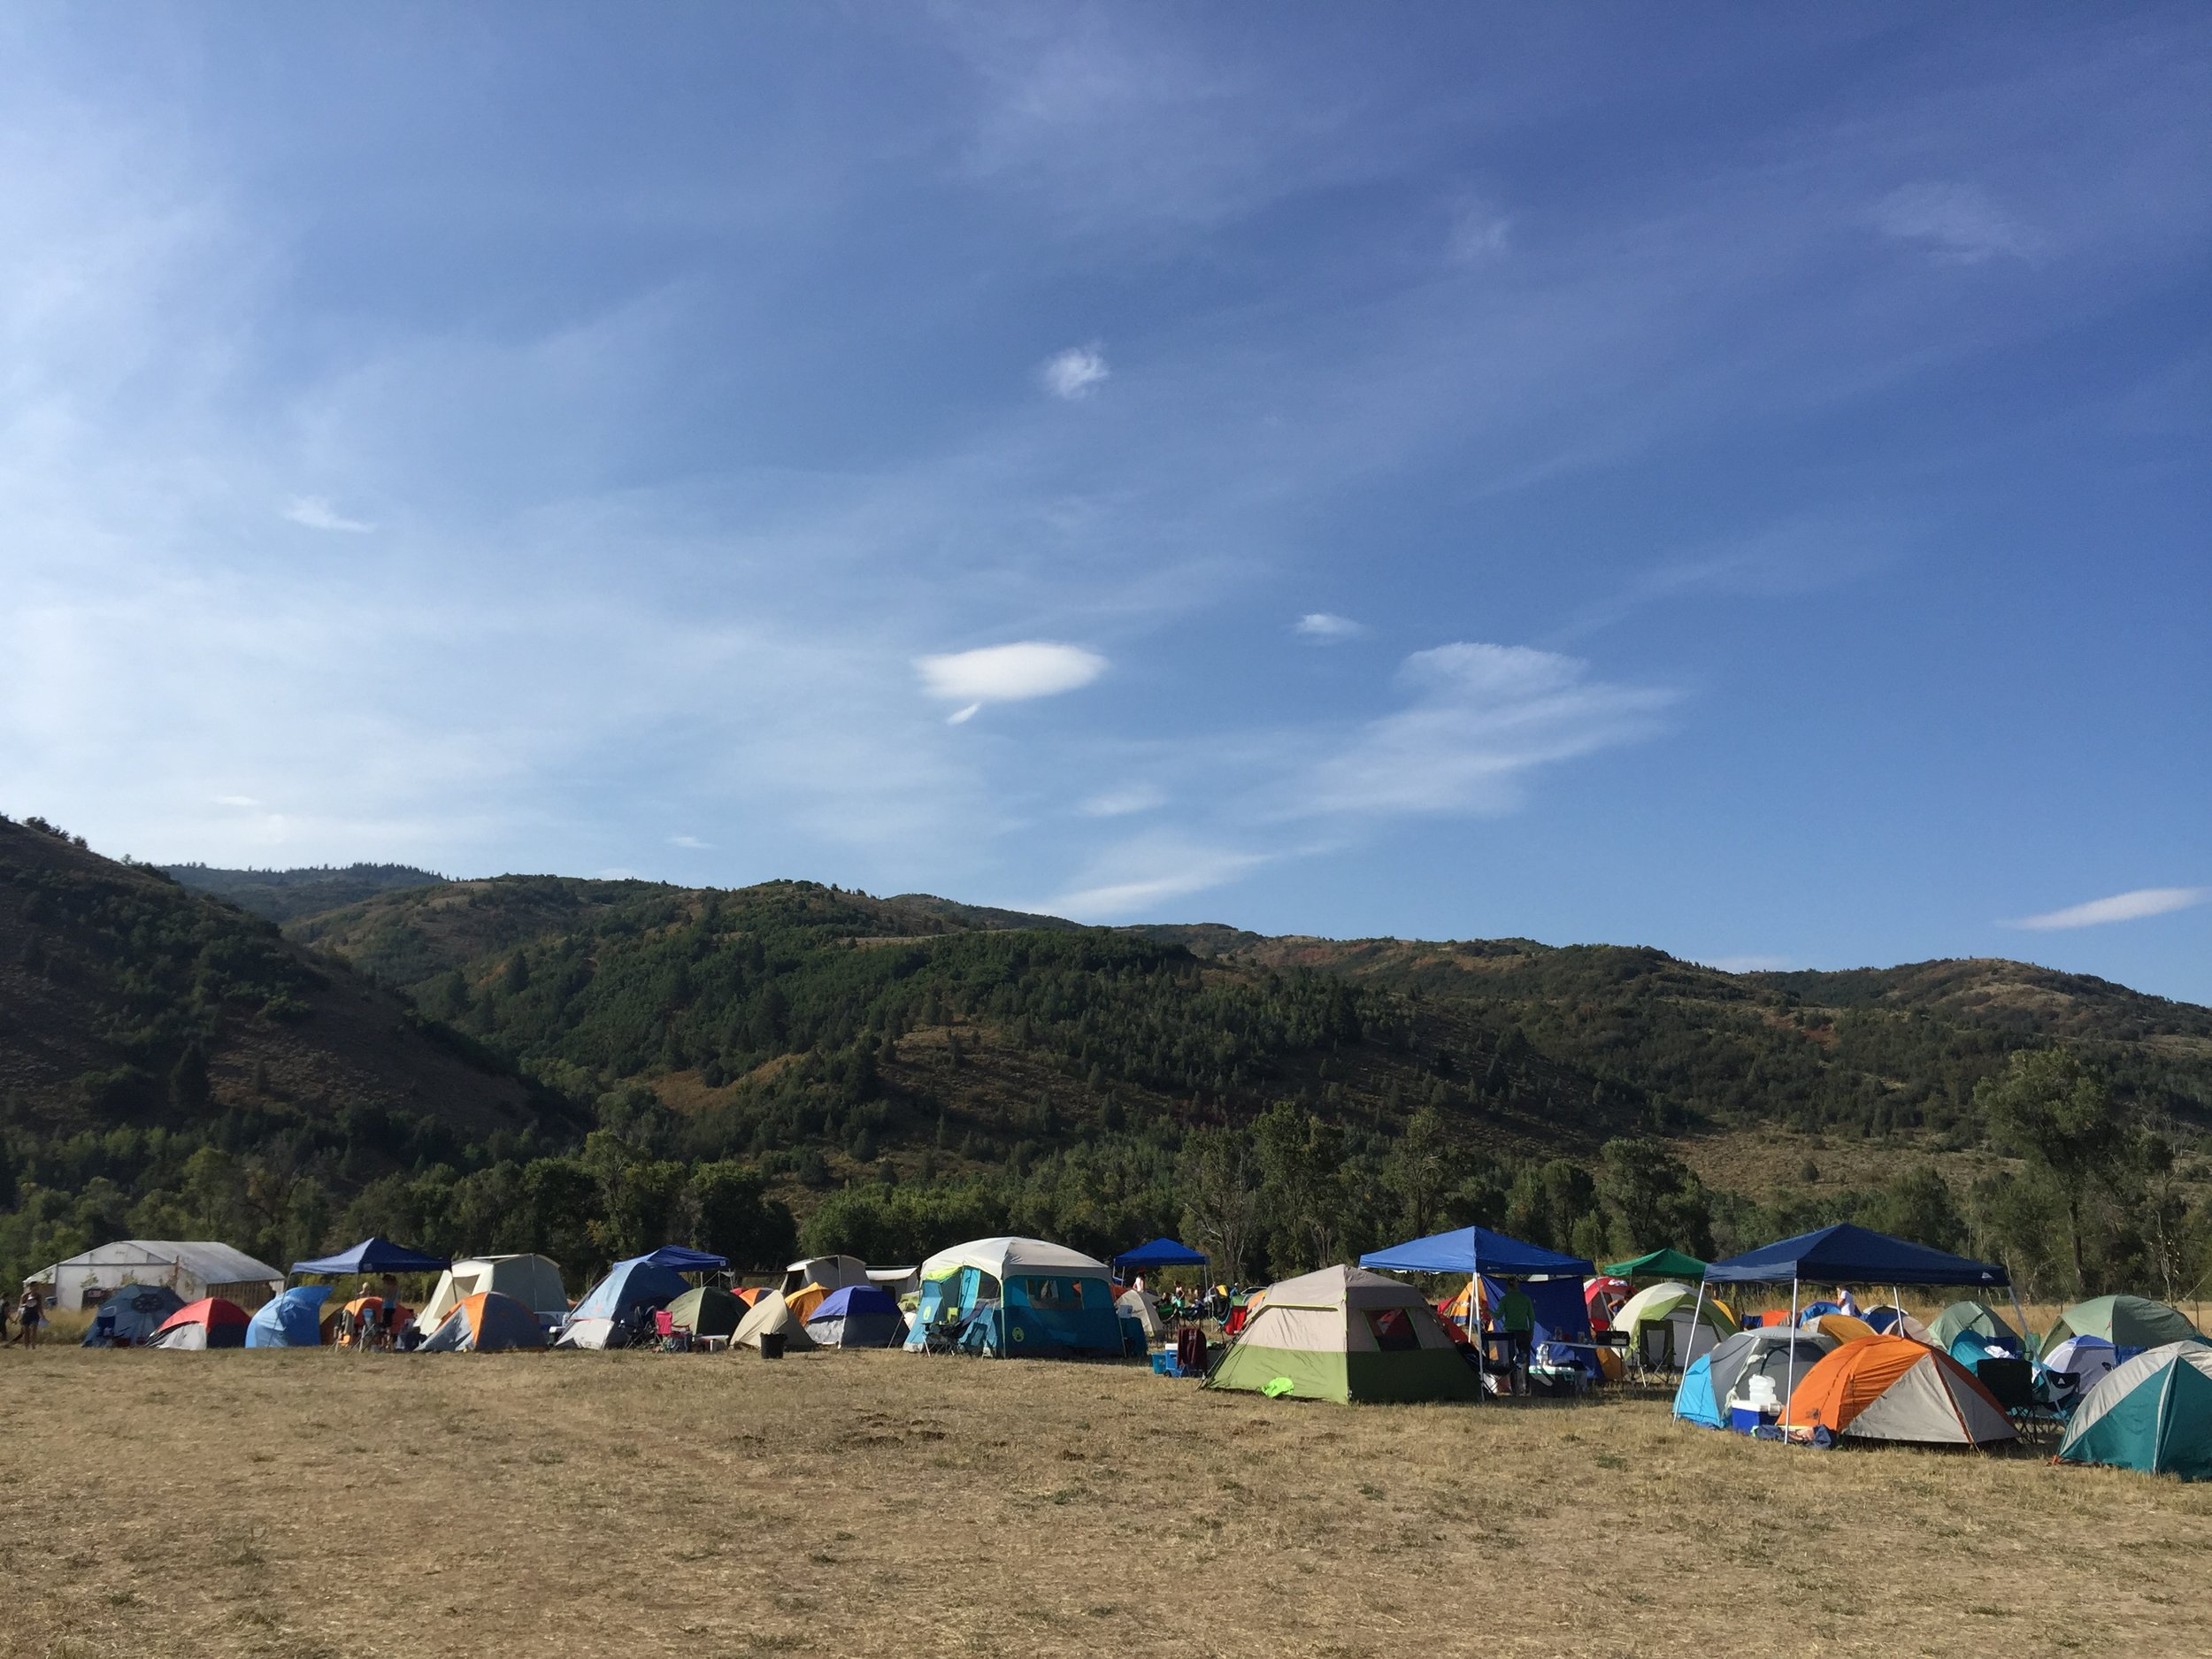 Tent City, where strangers become friends and neighbors in the same instant.